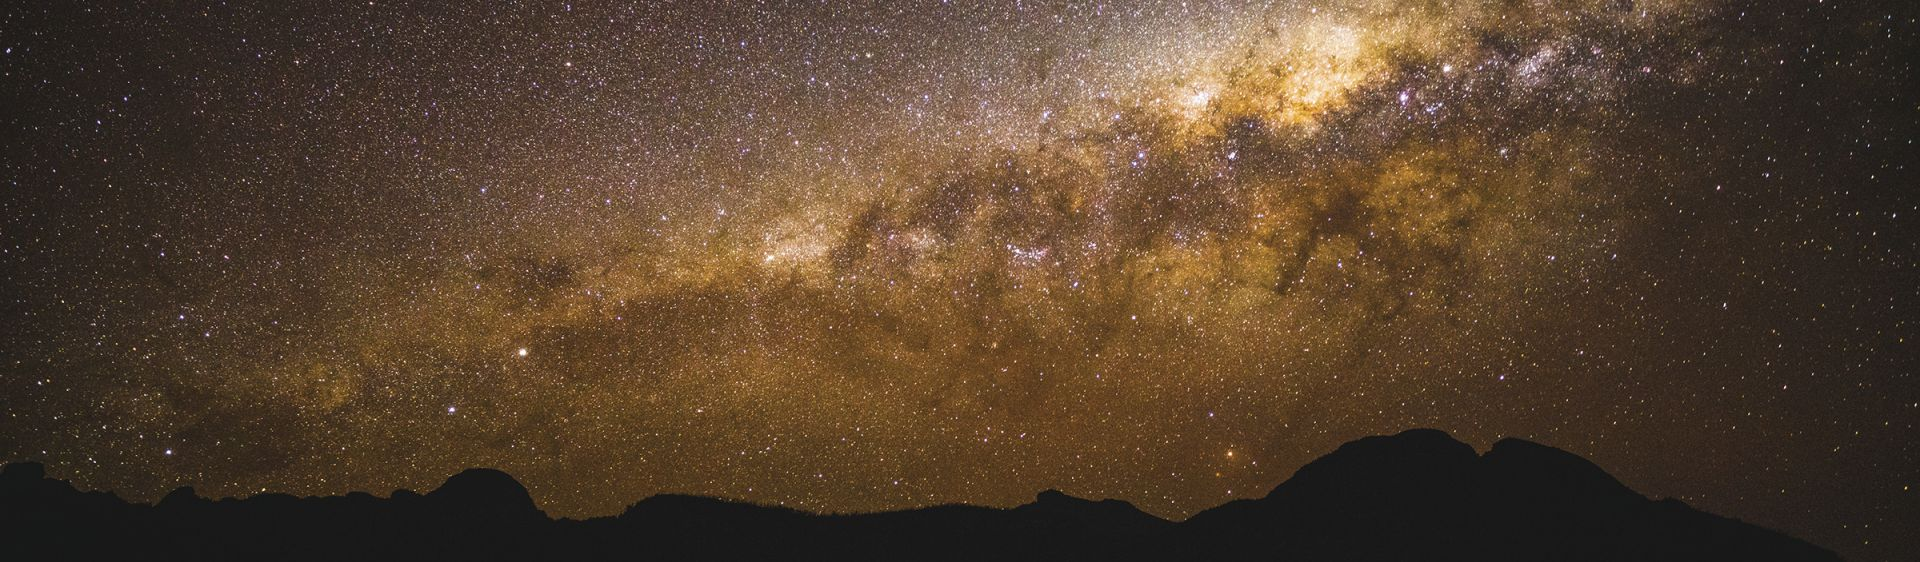 The starry Milky Way above the volcanic silhouette, Warrumbungles